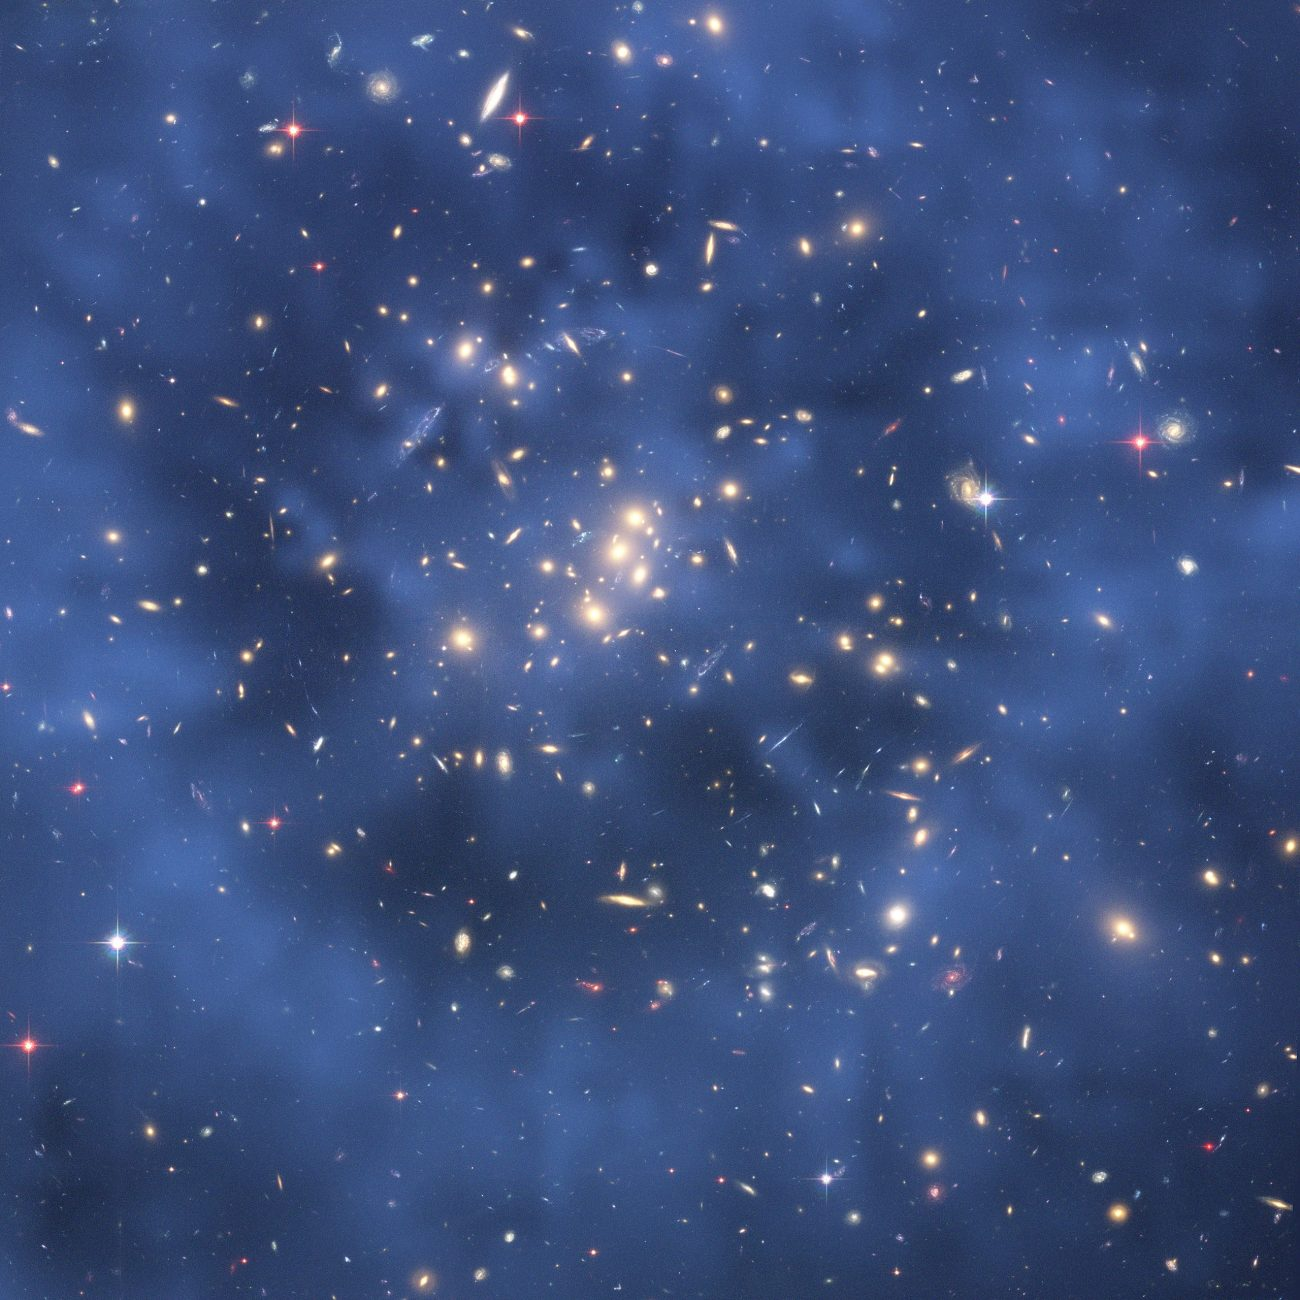 Composite image of the cluster of galaxies CL0024 + 17 taken by the Hubble Space Telescope shows the creation of a gravitational lens effect. It is assumed that this effect is due, in large part, to the gravitational interaction with dark matter. Image Credit: Wikimedia Commons.